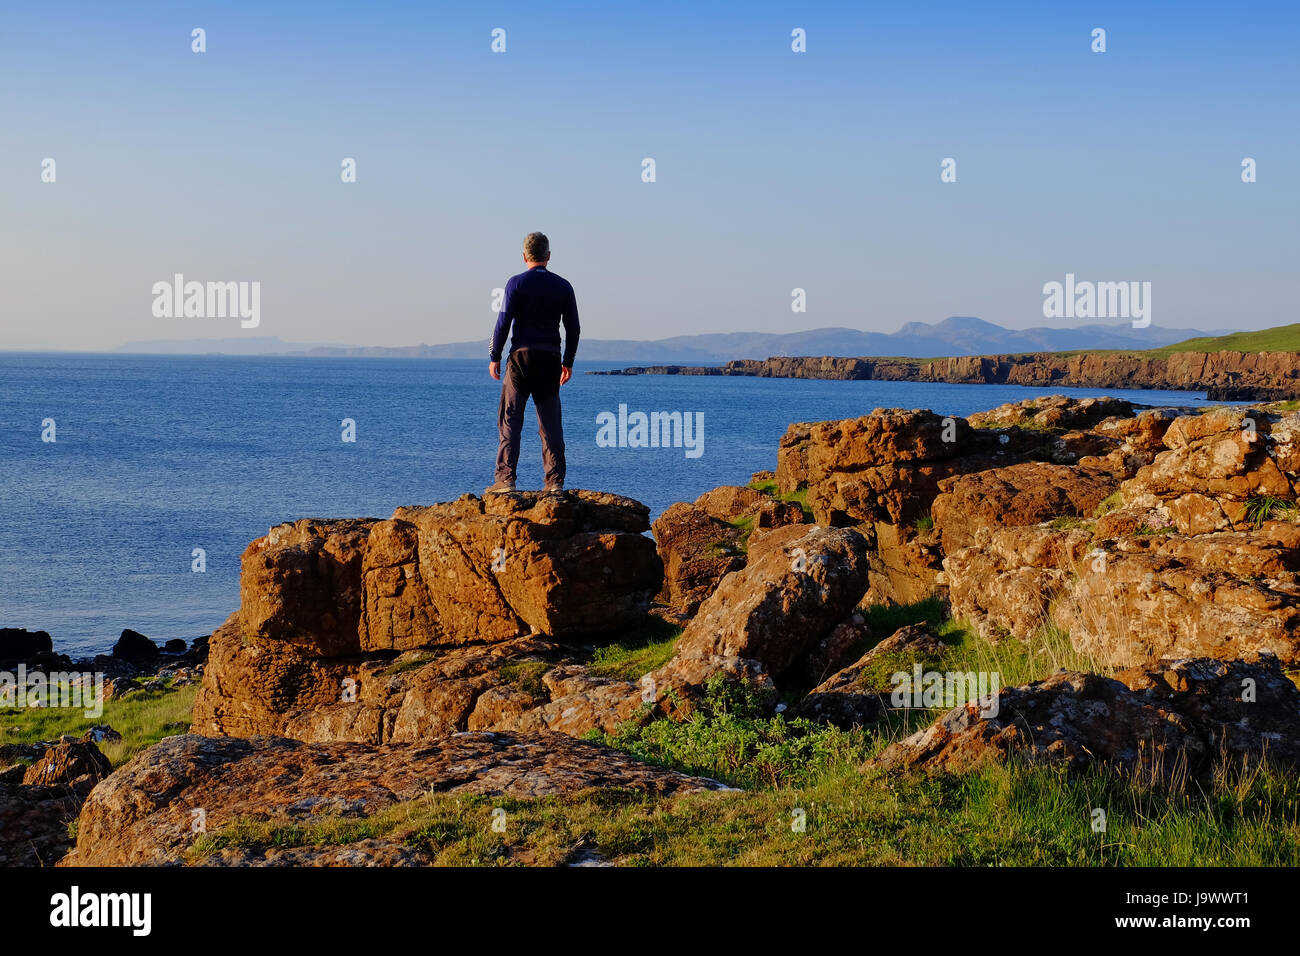 Man standing on rocks looking out to sea, Mull, Scotland - Stock Image